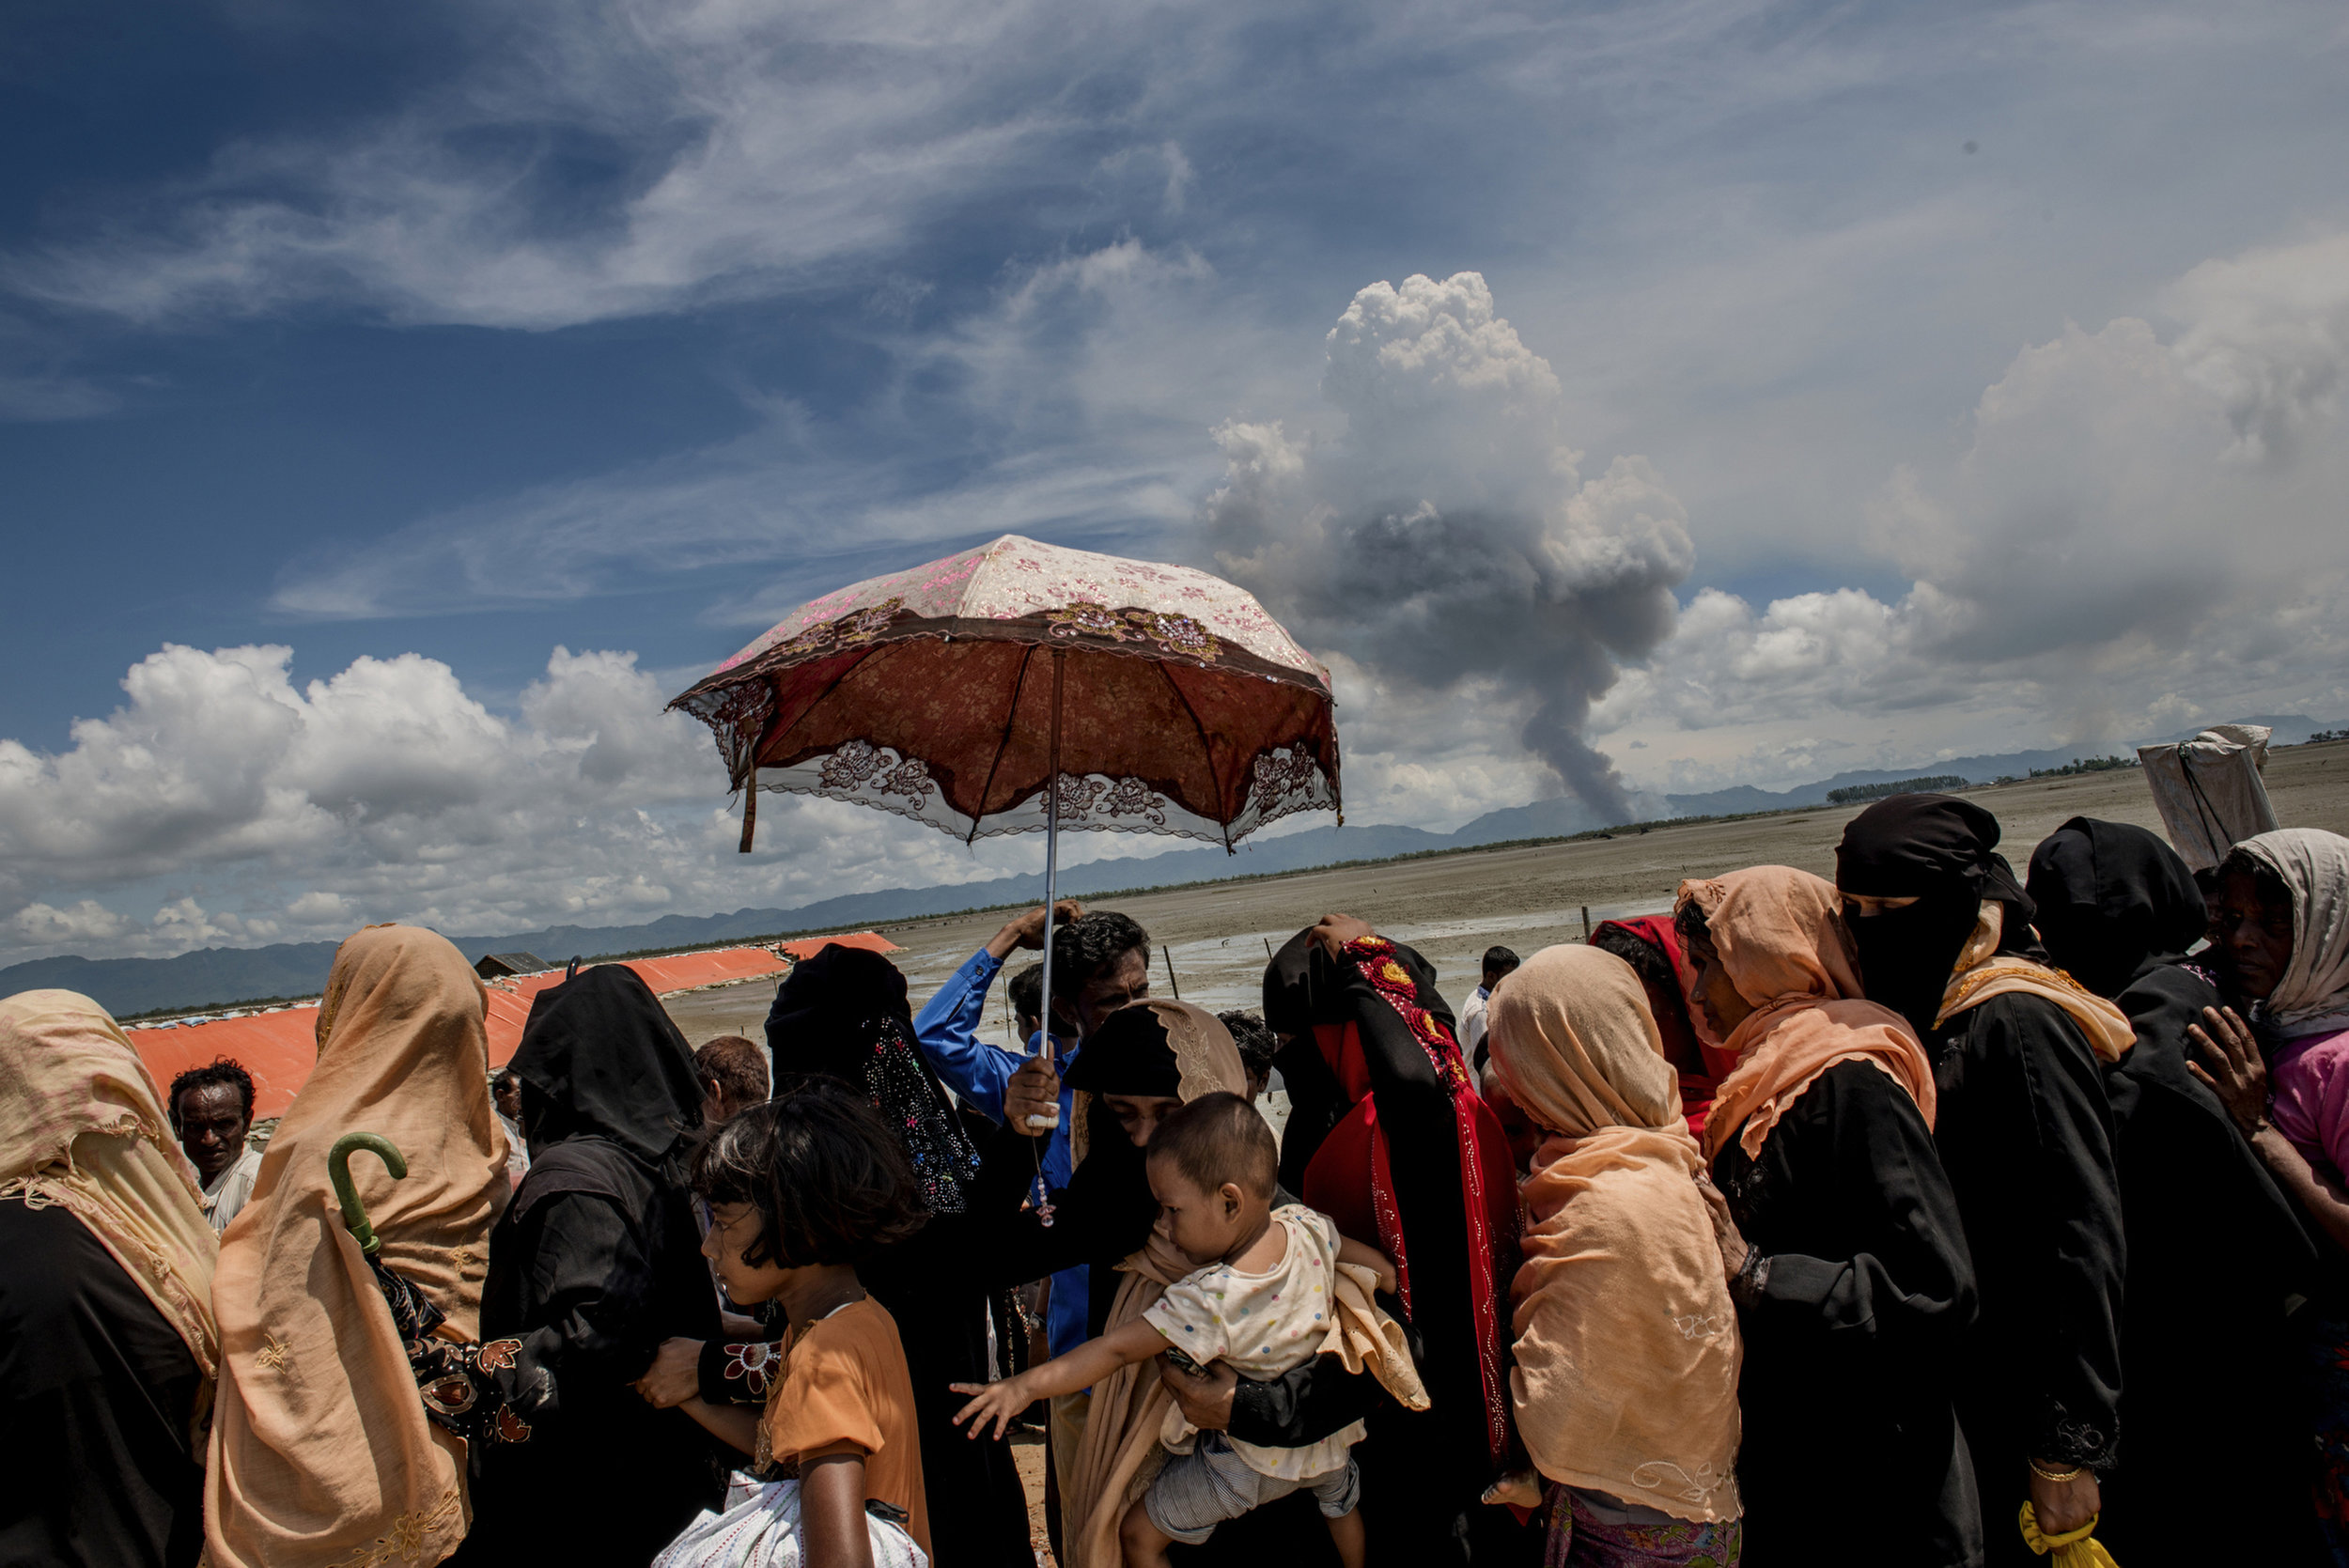 Rohingya refugees are waiting to get some relief at Shahporir Dwip on the border of Bangladesh and Myanmar. Smokes from burning villages visible on the horizon.